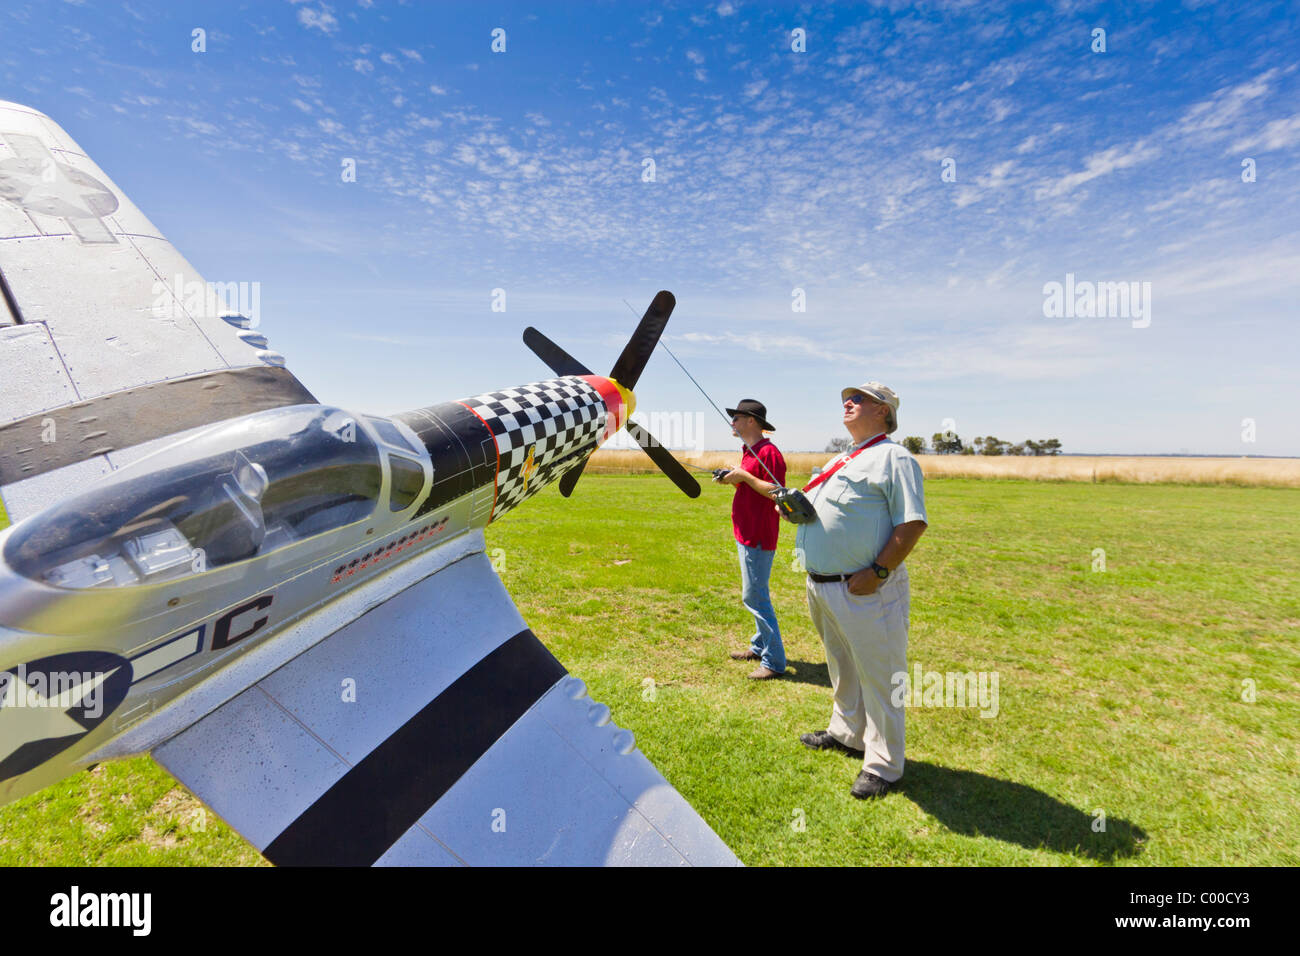 R/C Aircraft Flying in Australia Stock Photo